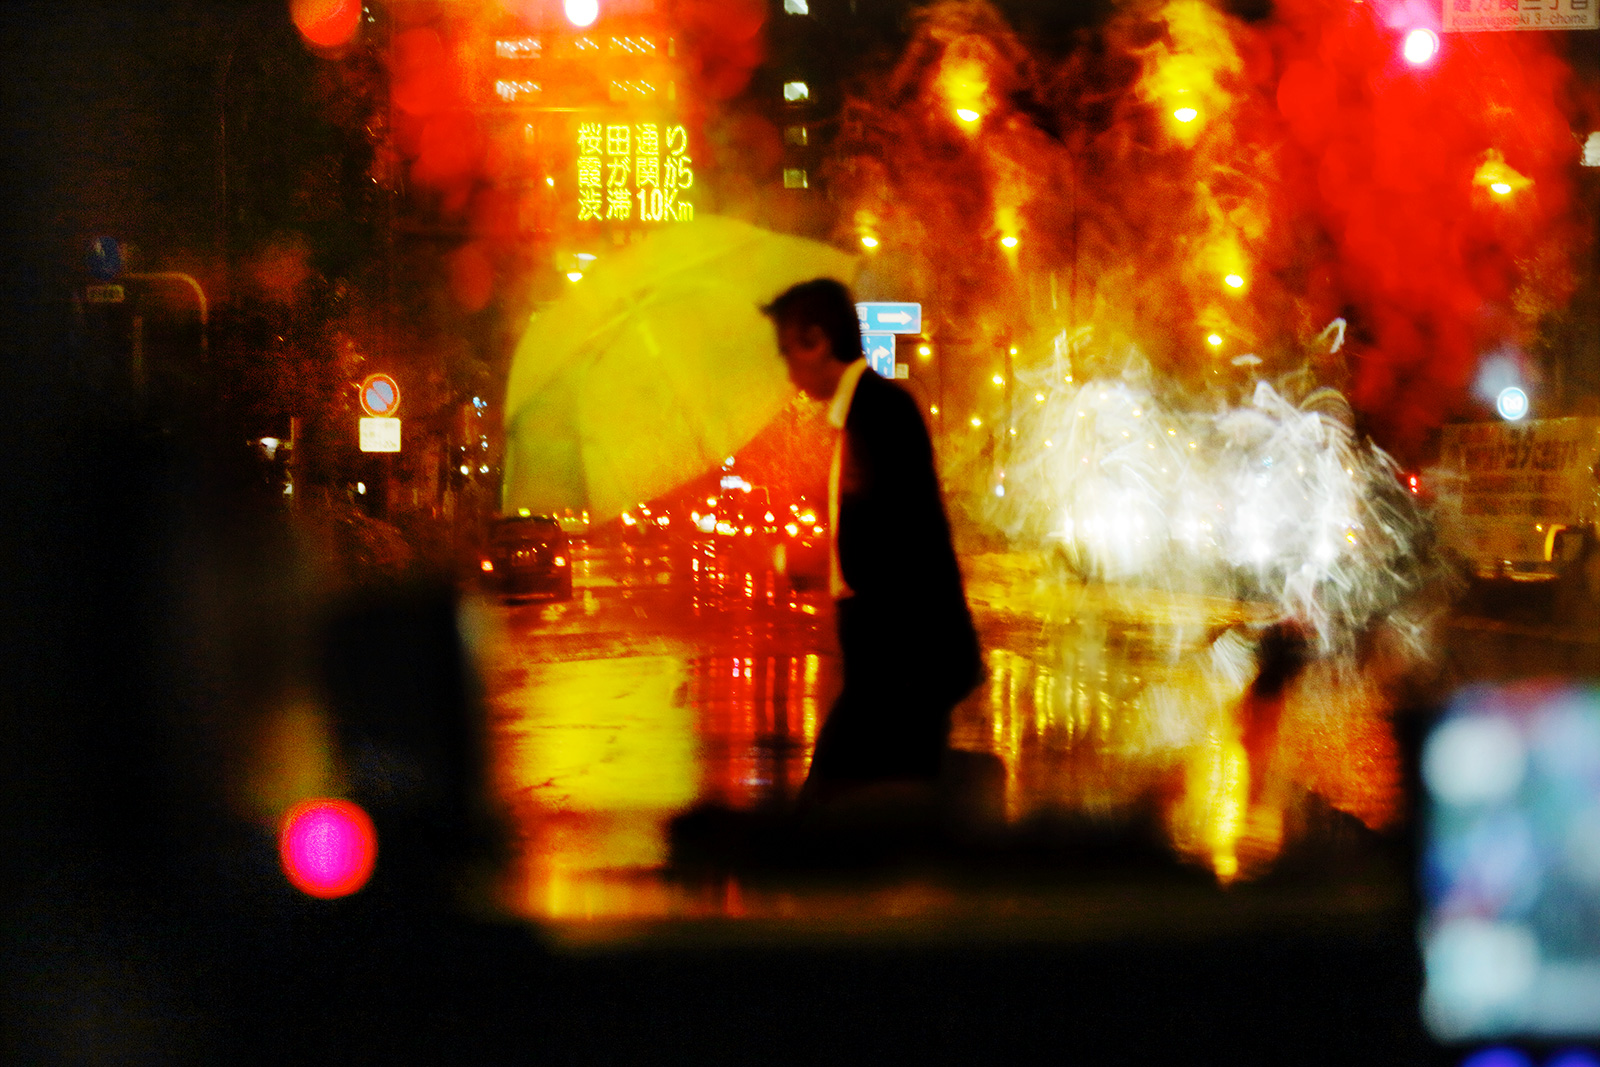 Fire by Christophe Jacrot